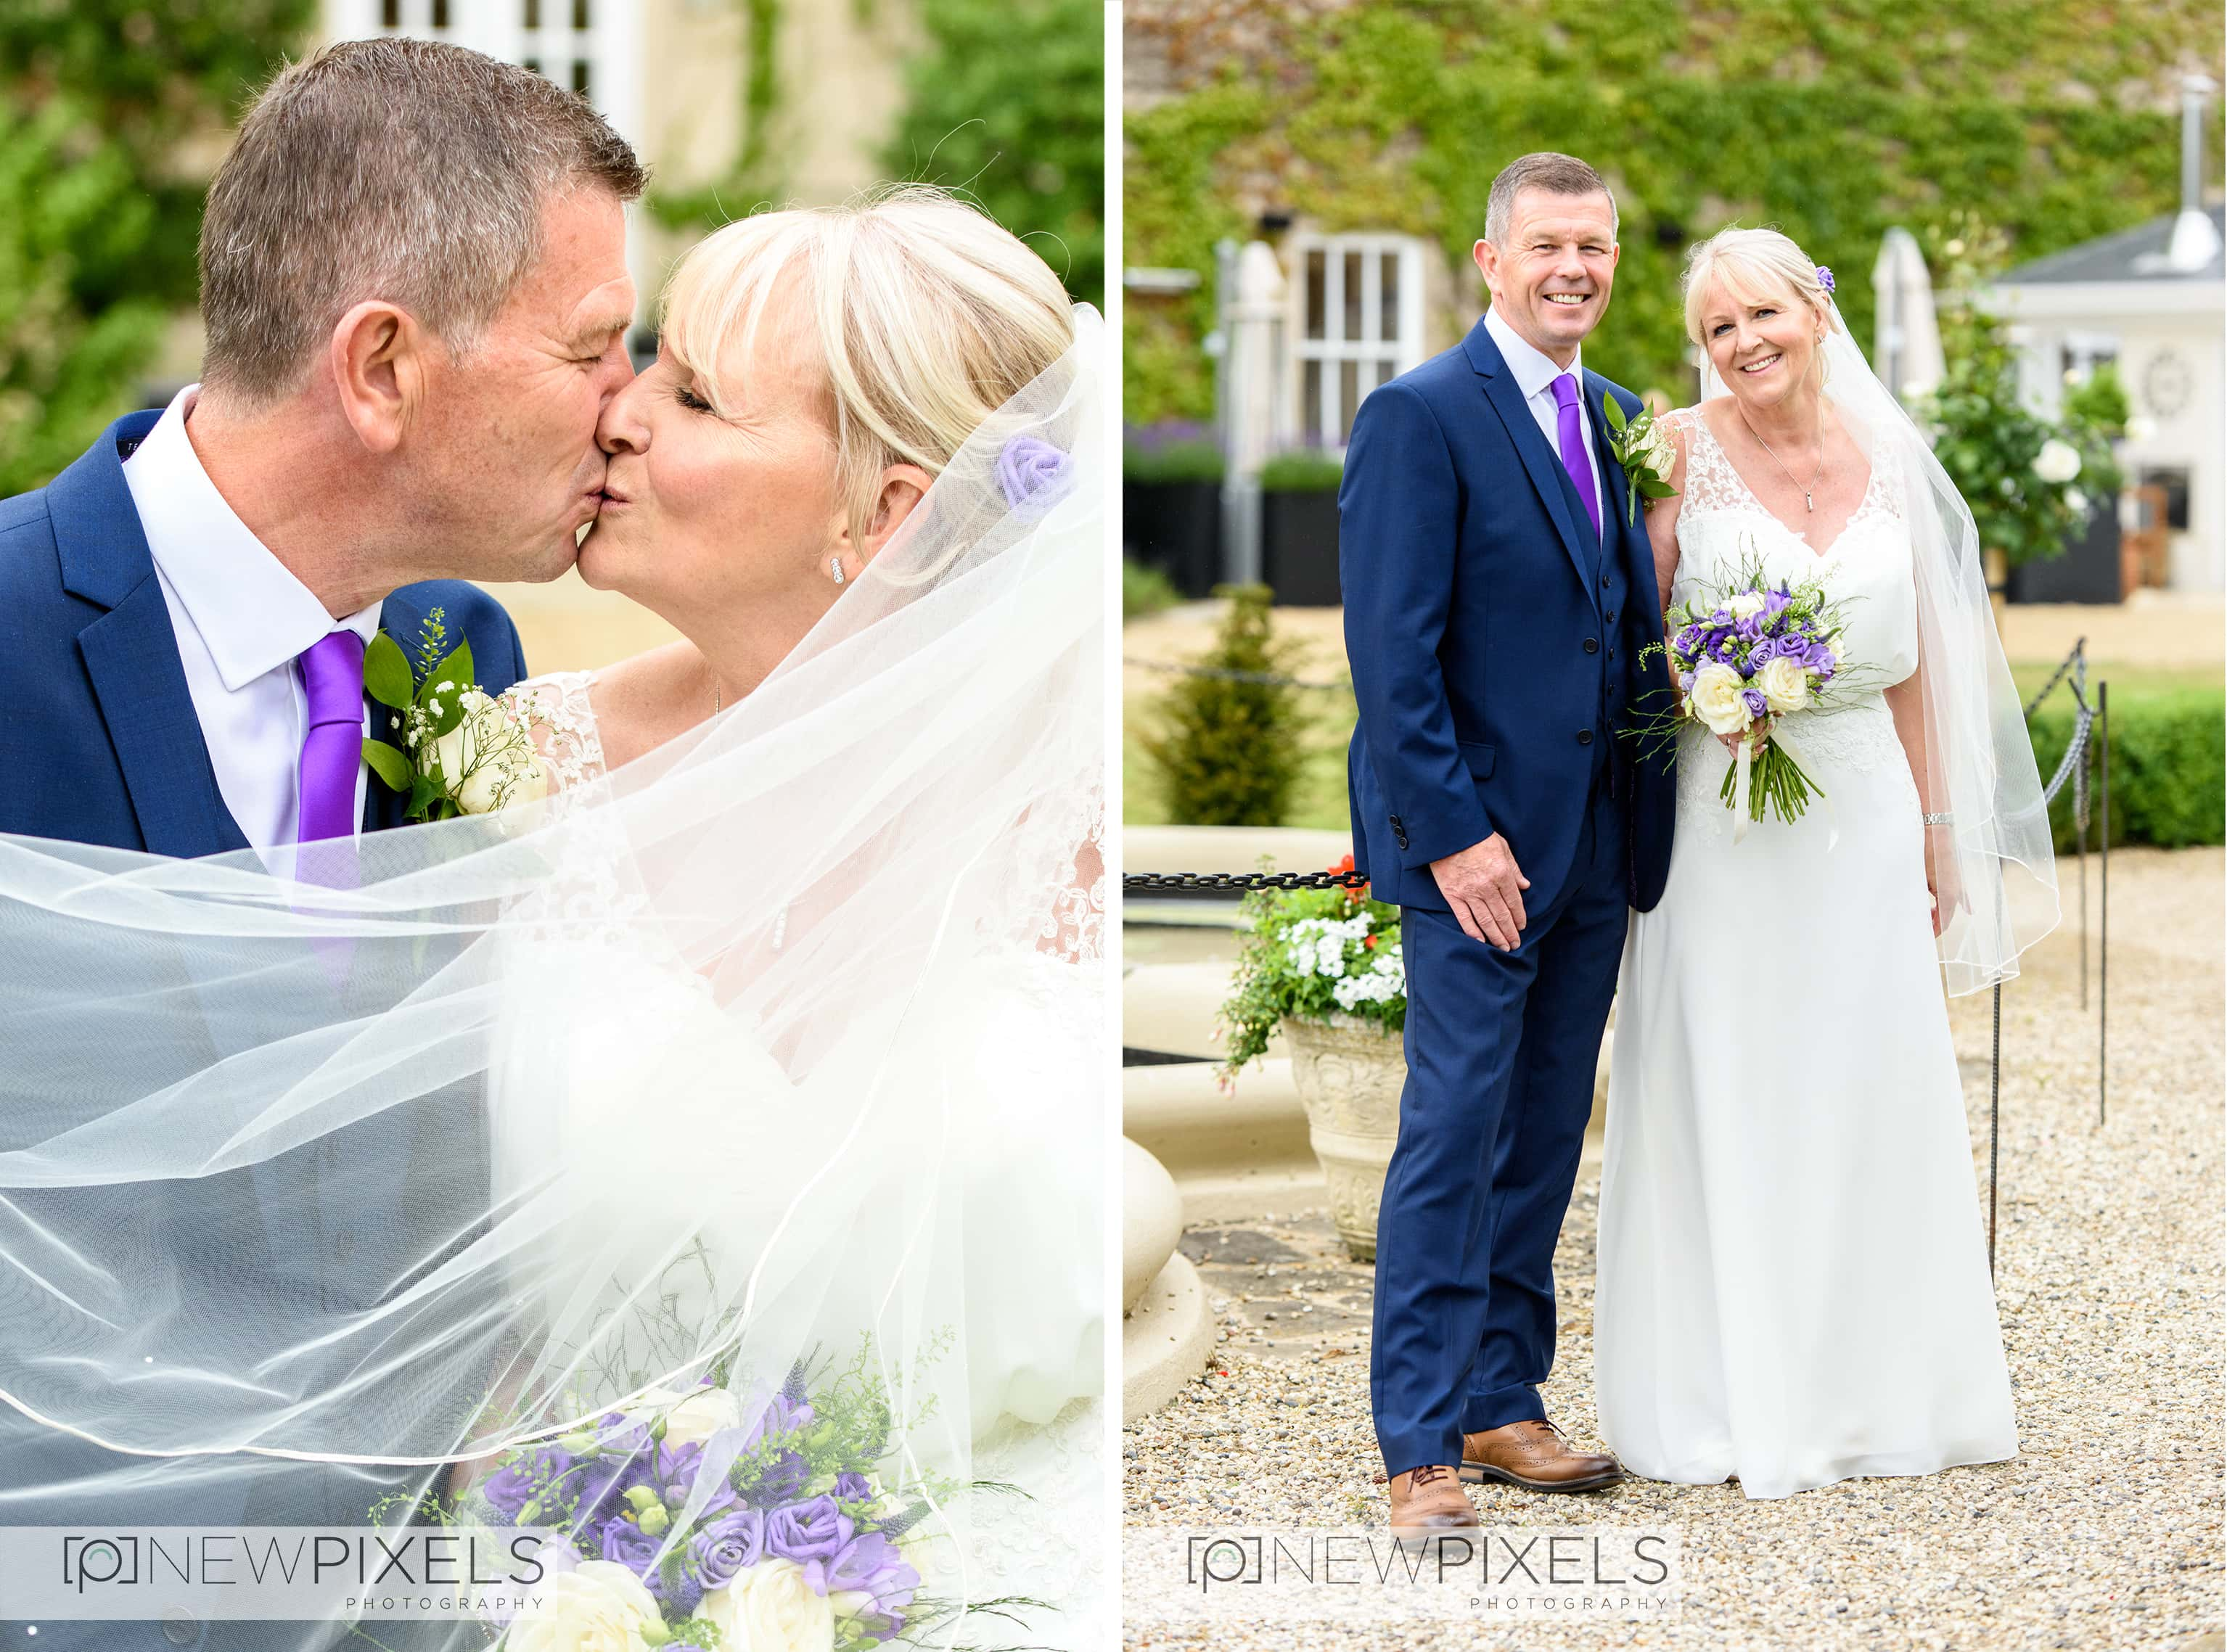 downhall wedding photographer3